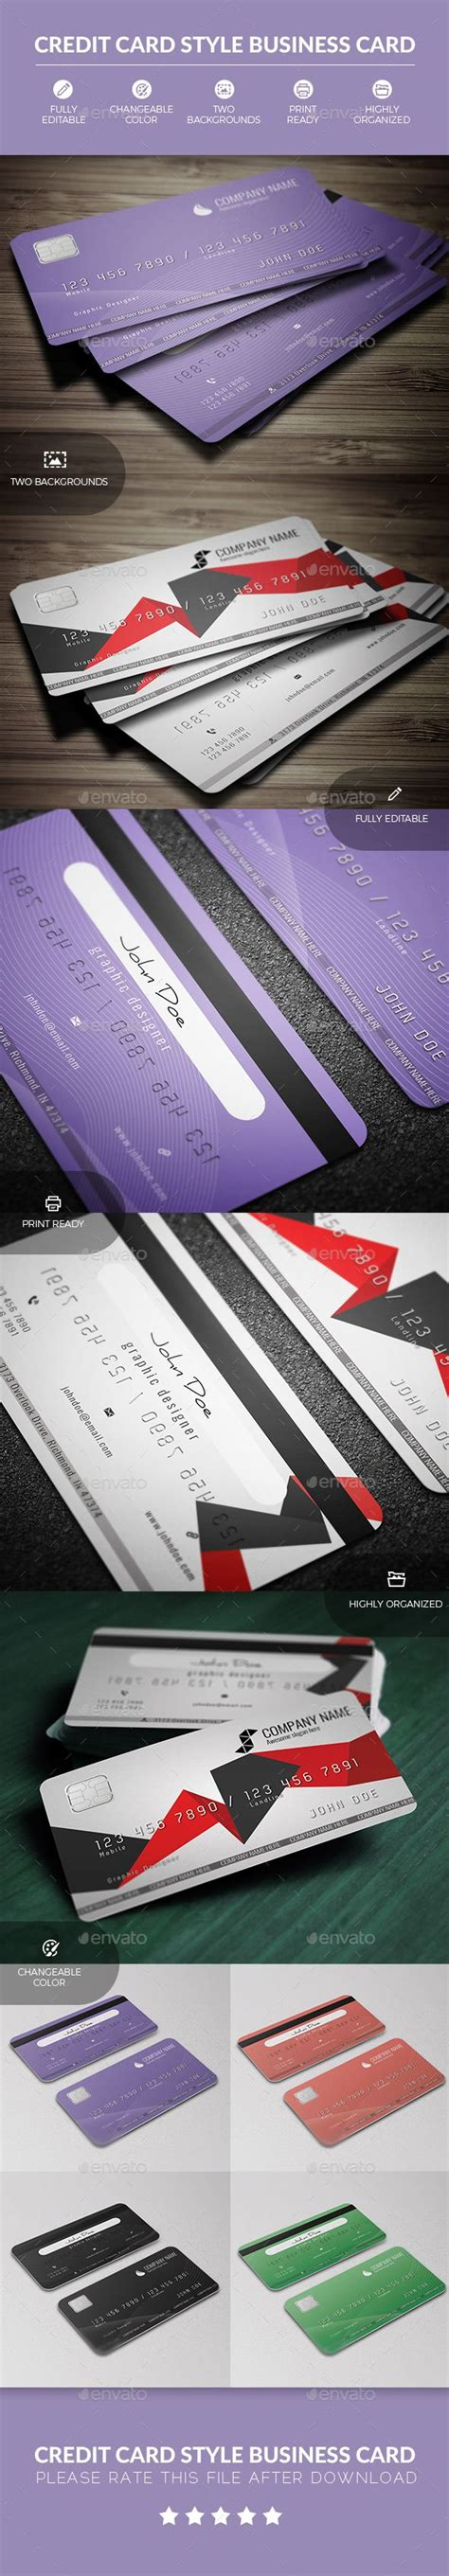 credit card style business card  images business